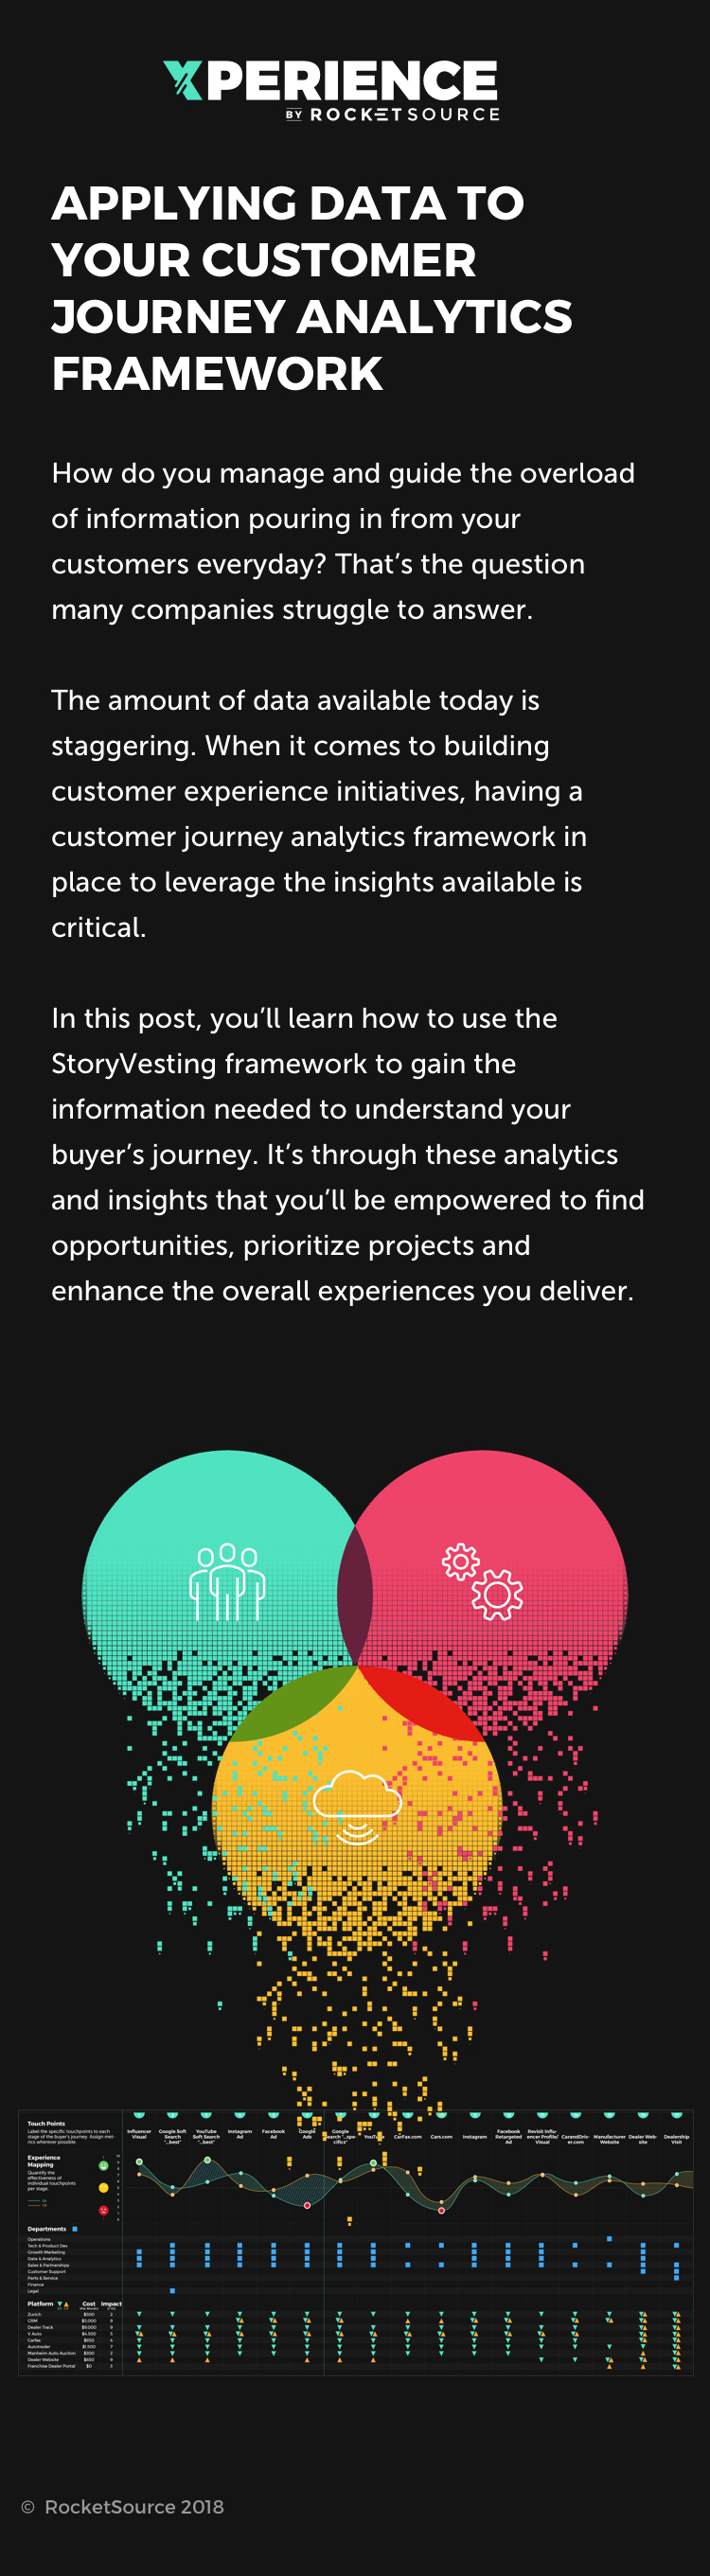 data centric customer journey analytics framework